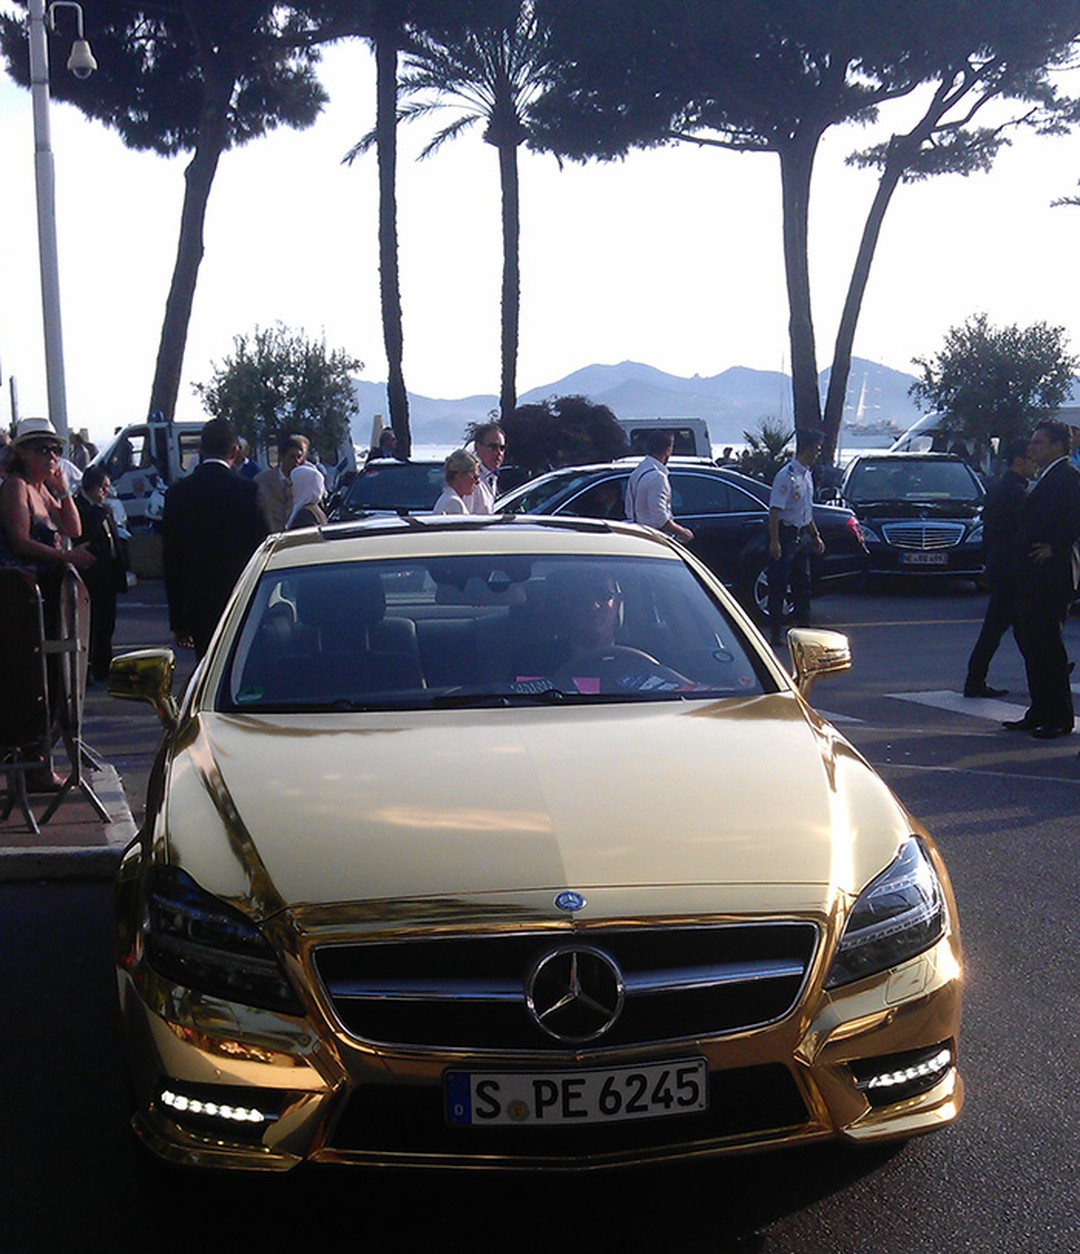 Only-in-Cannes-a-gold-Merc